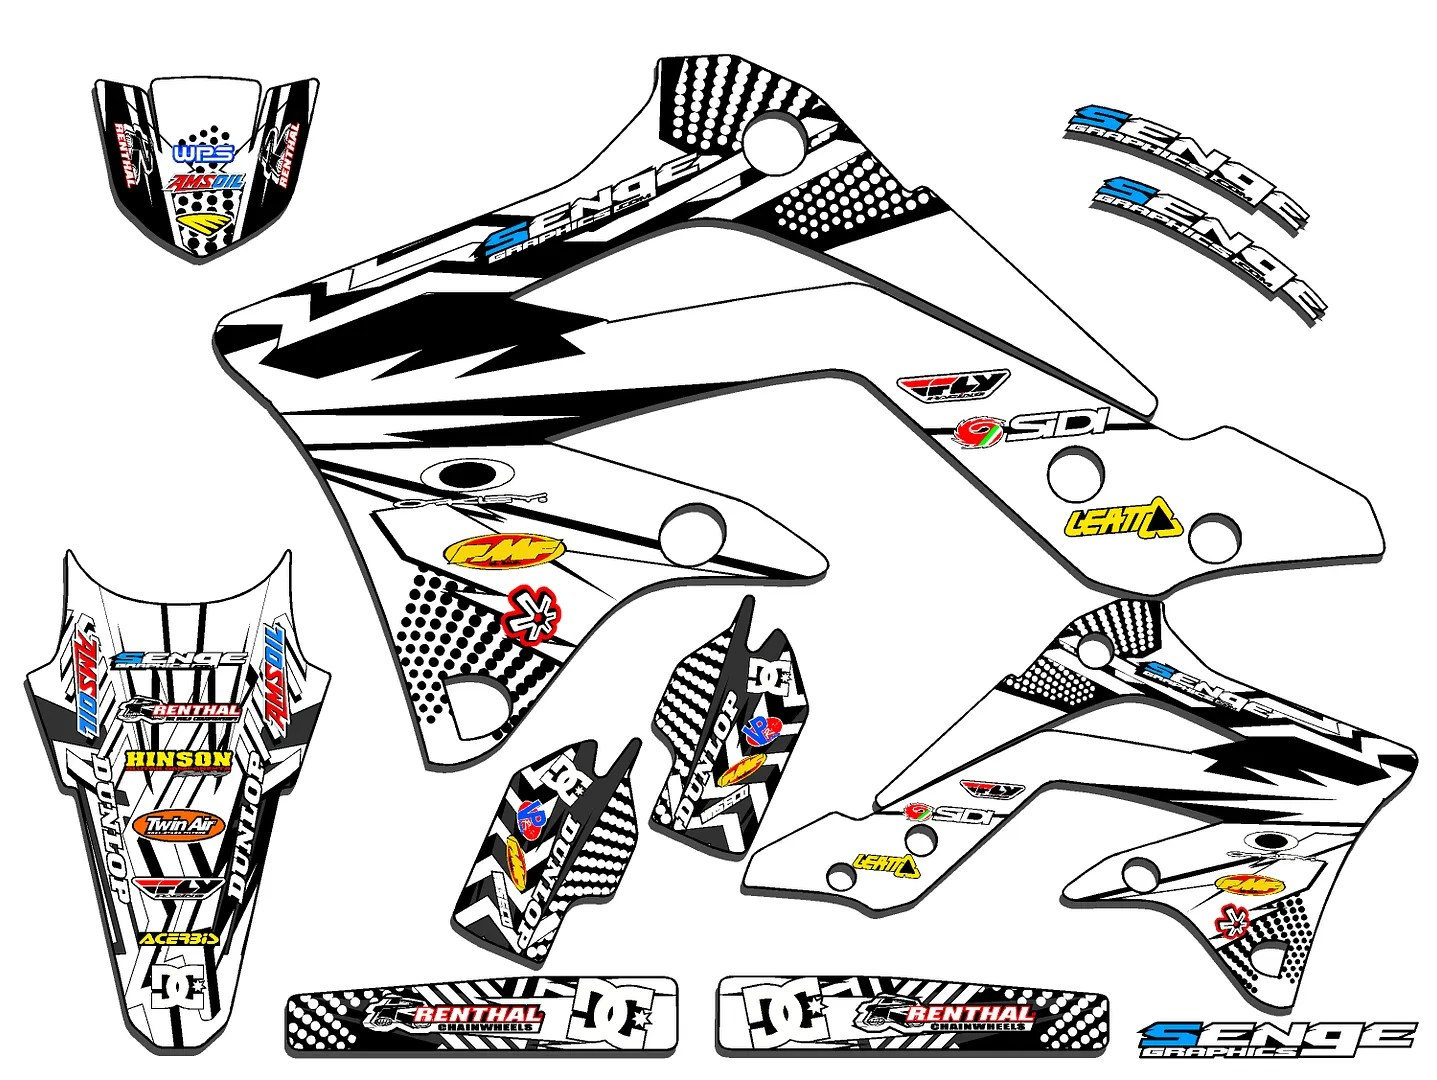 2006 2007 2008 KXF 450 GRAPHICS KIT KAWASAKI KX450F KX F